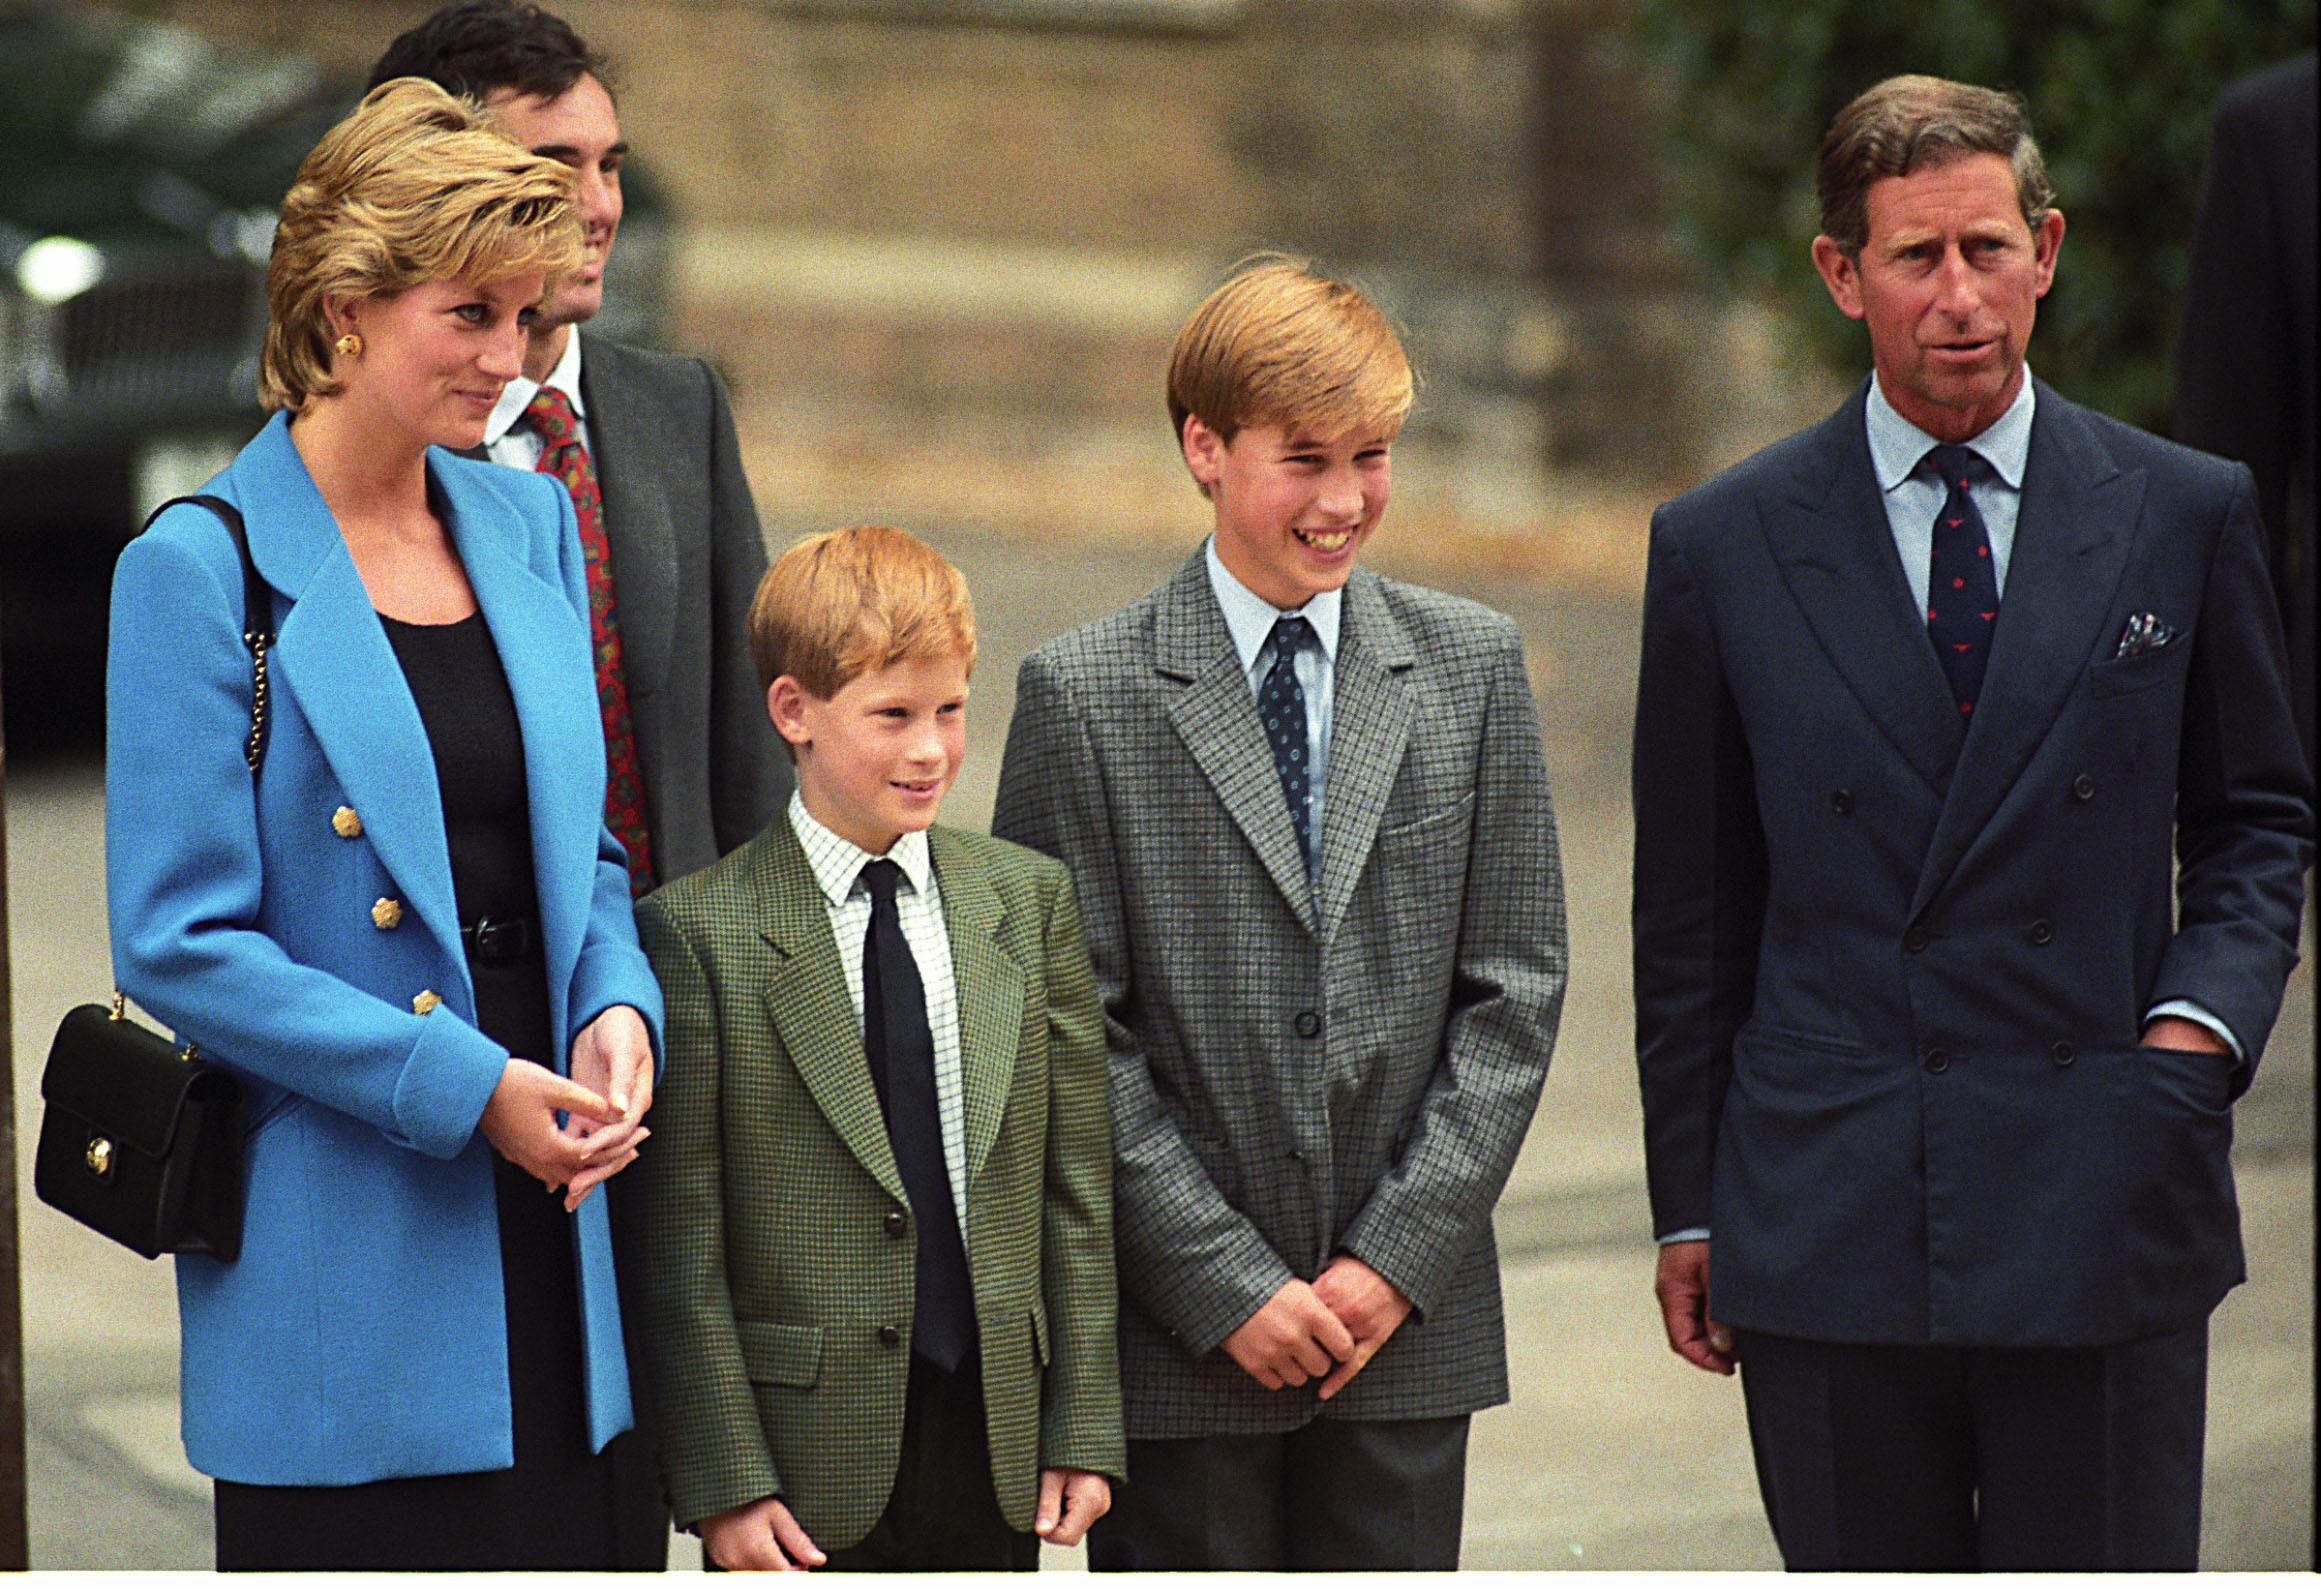 Princess Diana, Prince Harry, Prince William, Prince Charles at William's first day at Eton.